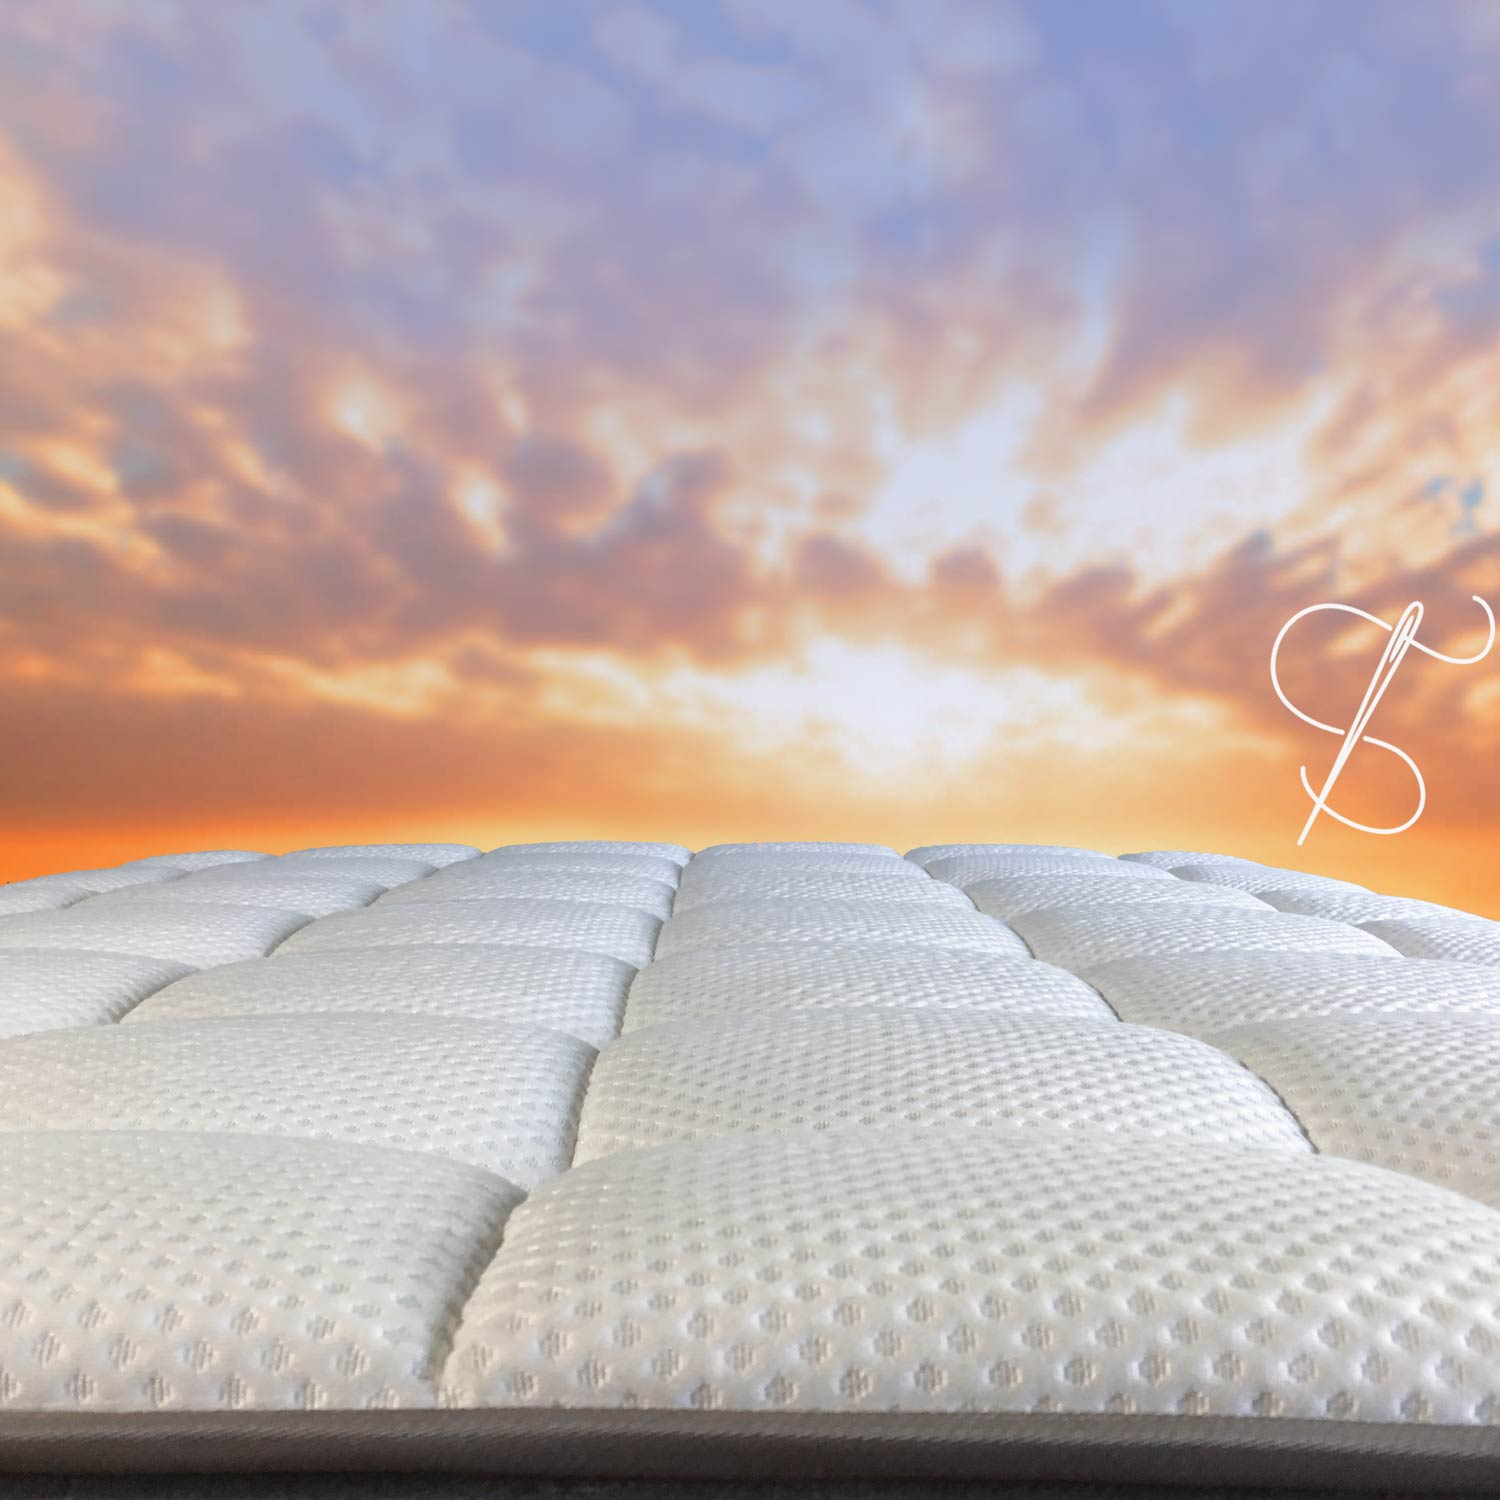 DREAMCLOUD MATTRESS COVER IS 100% HAND TUFTED AND IS WELL HANDCRAFTED FROM THE INSIDE TO THE OUTER COVER. ADDITIONALLY ZERO ODOR WAS DETECTED UPON OPENING.